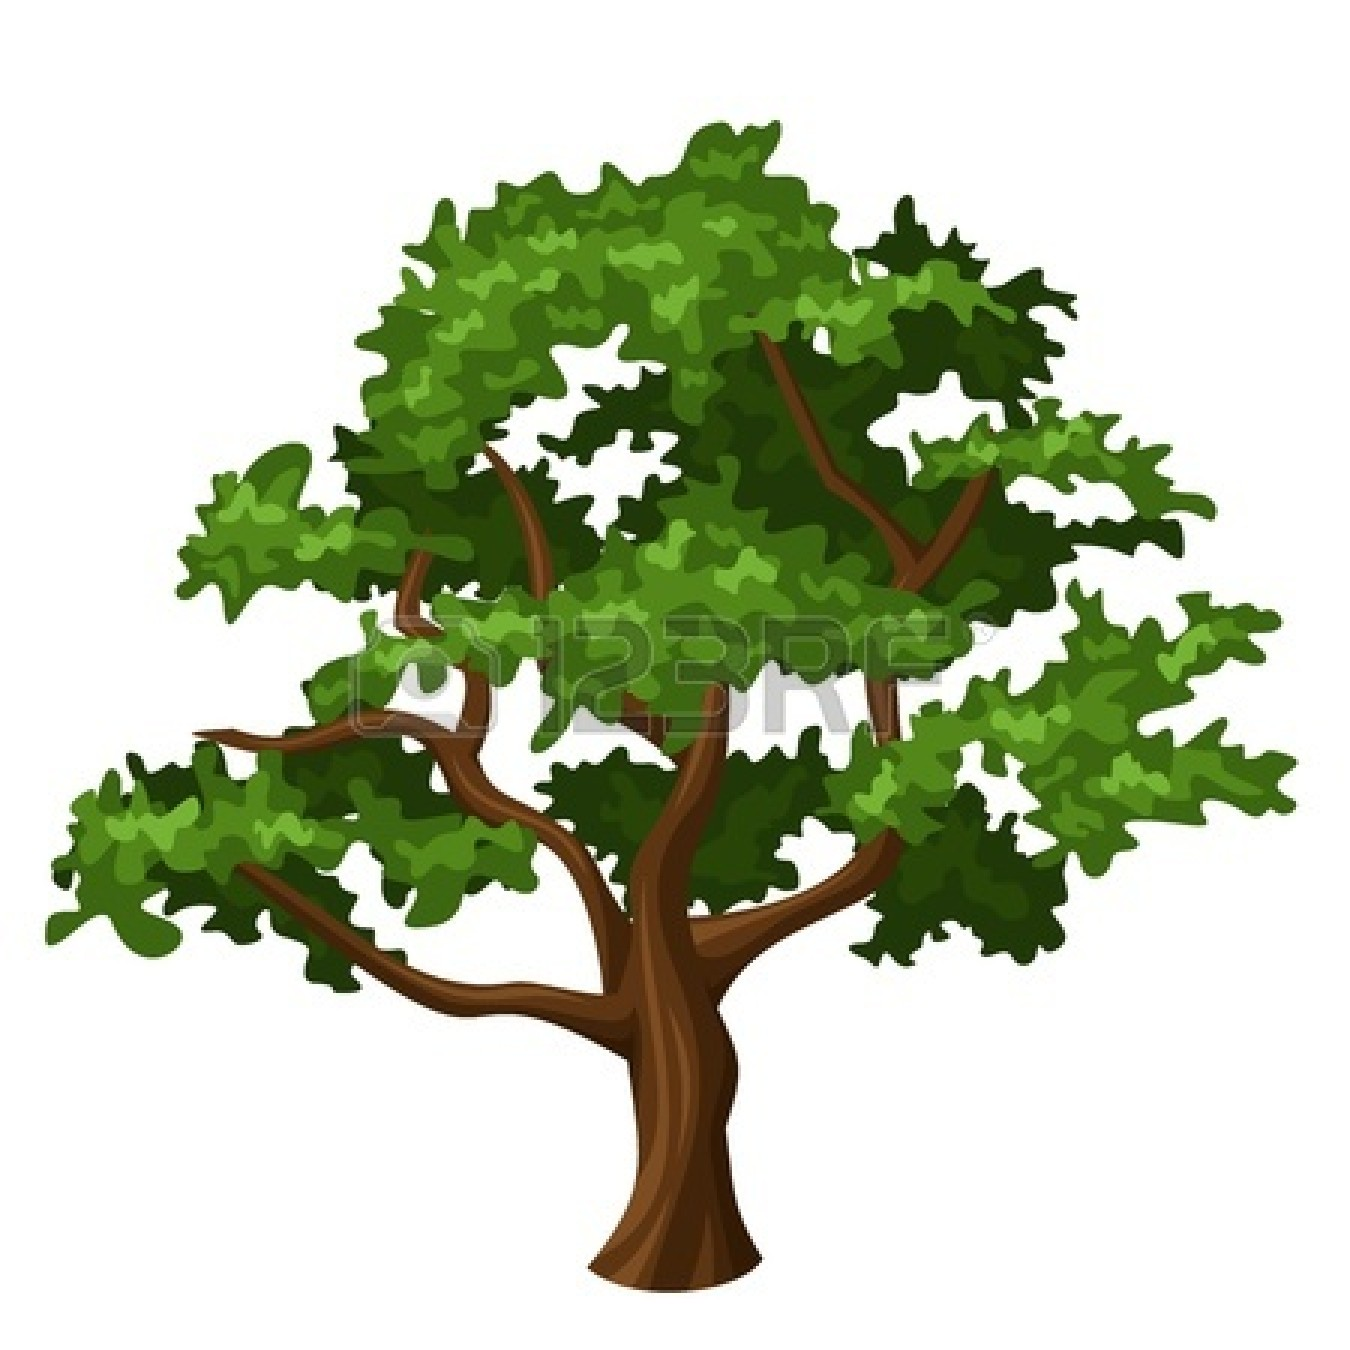 Black And White Oak Tree Clipart-black and white oak tree clipart-4